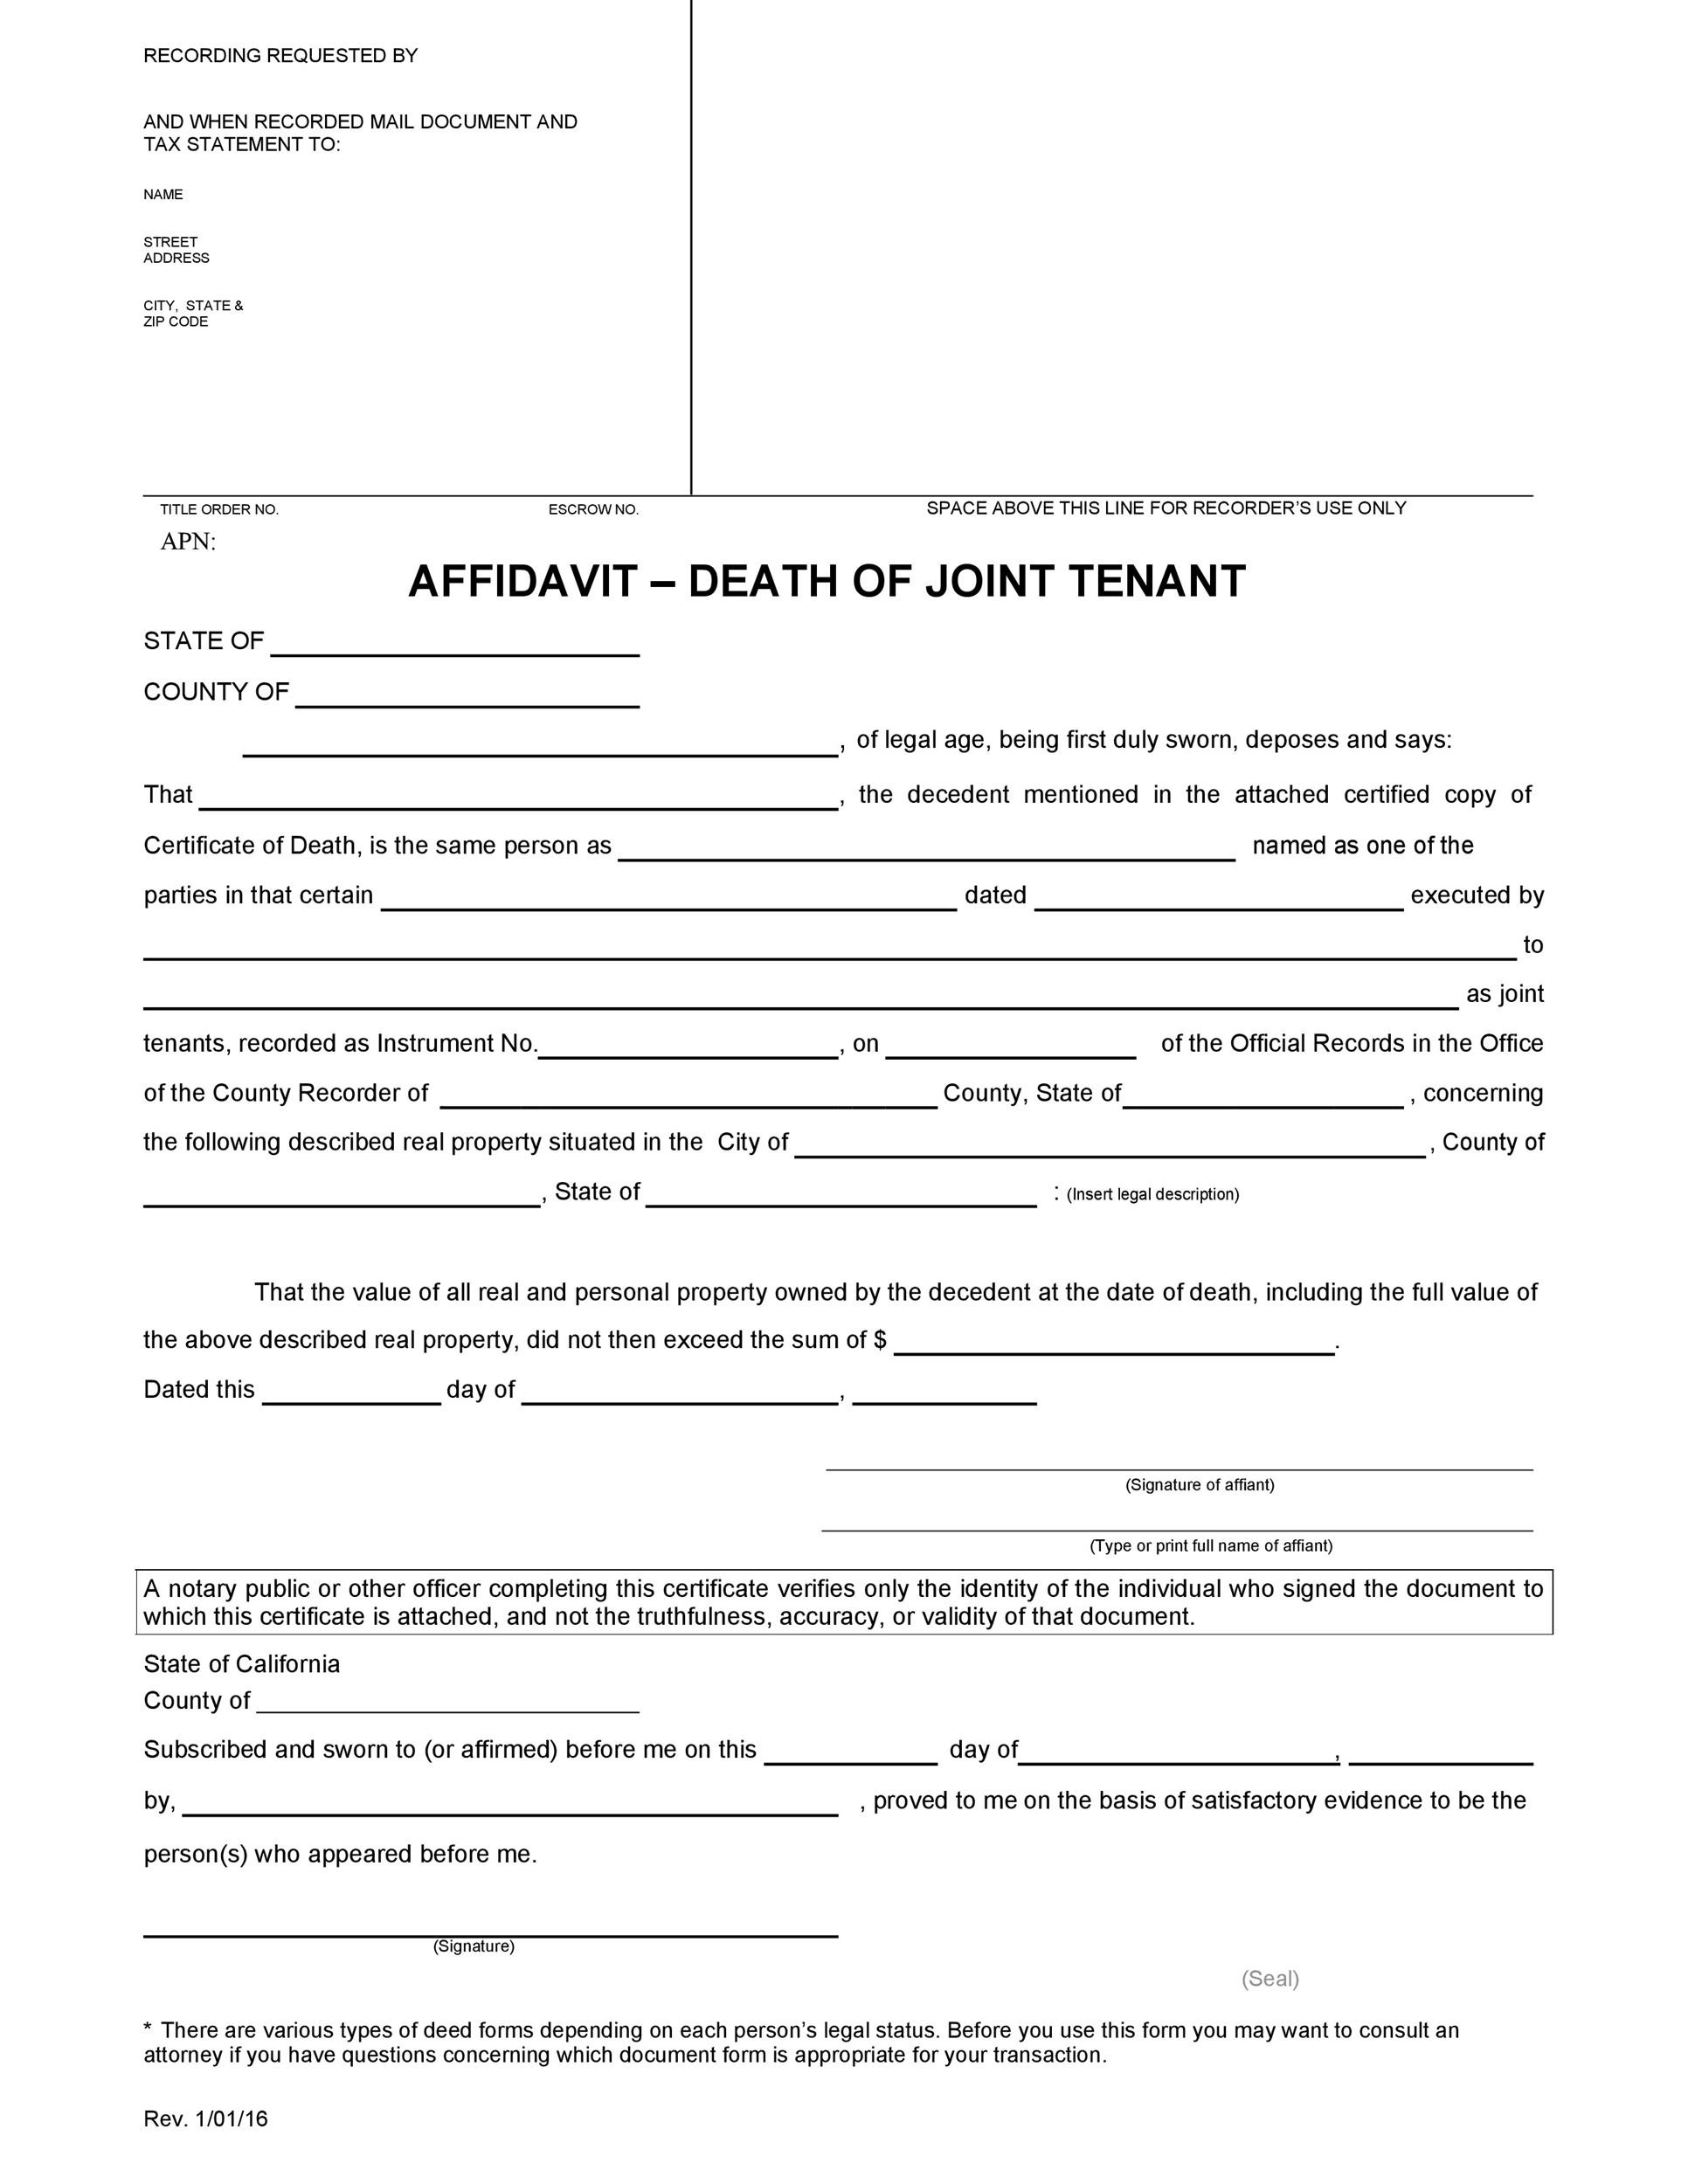 Free affidavit of death 42